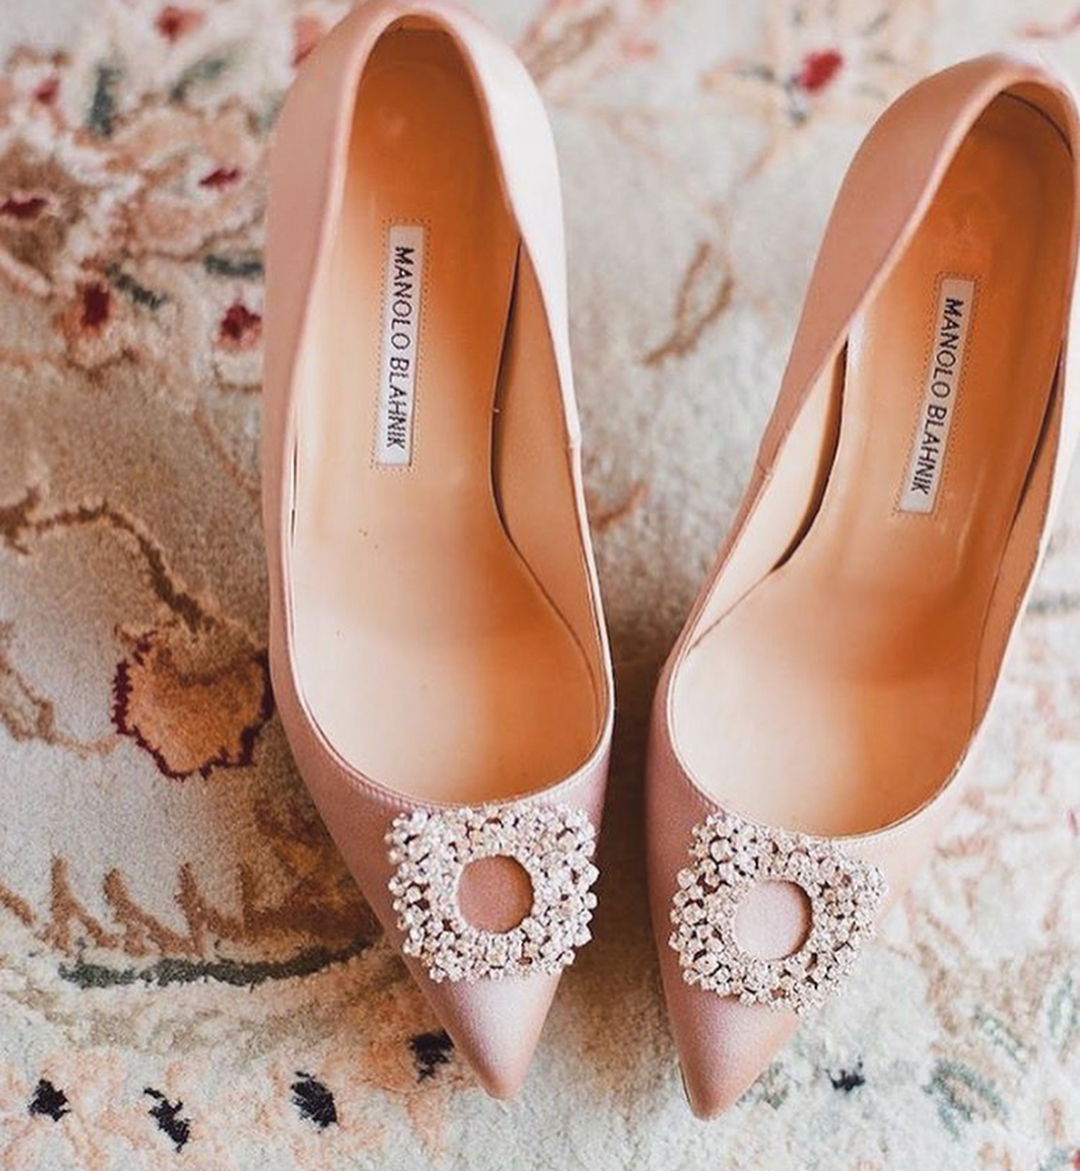 Ivory Color Pointed Toe High Heels Shoes.